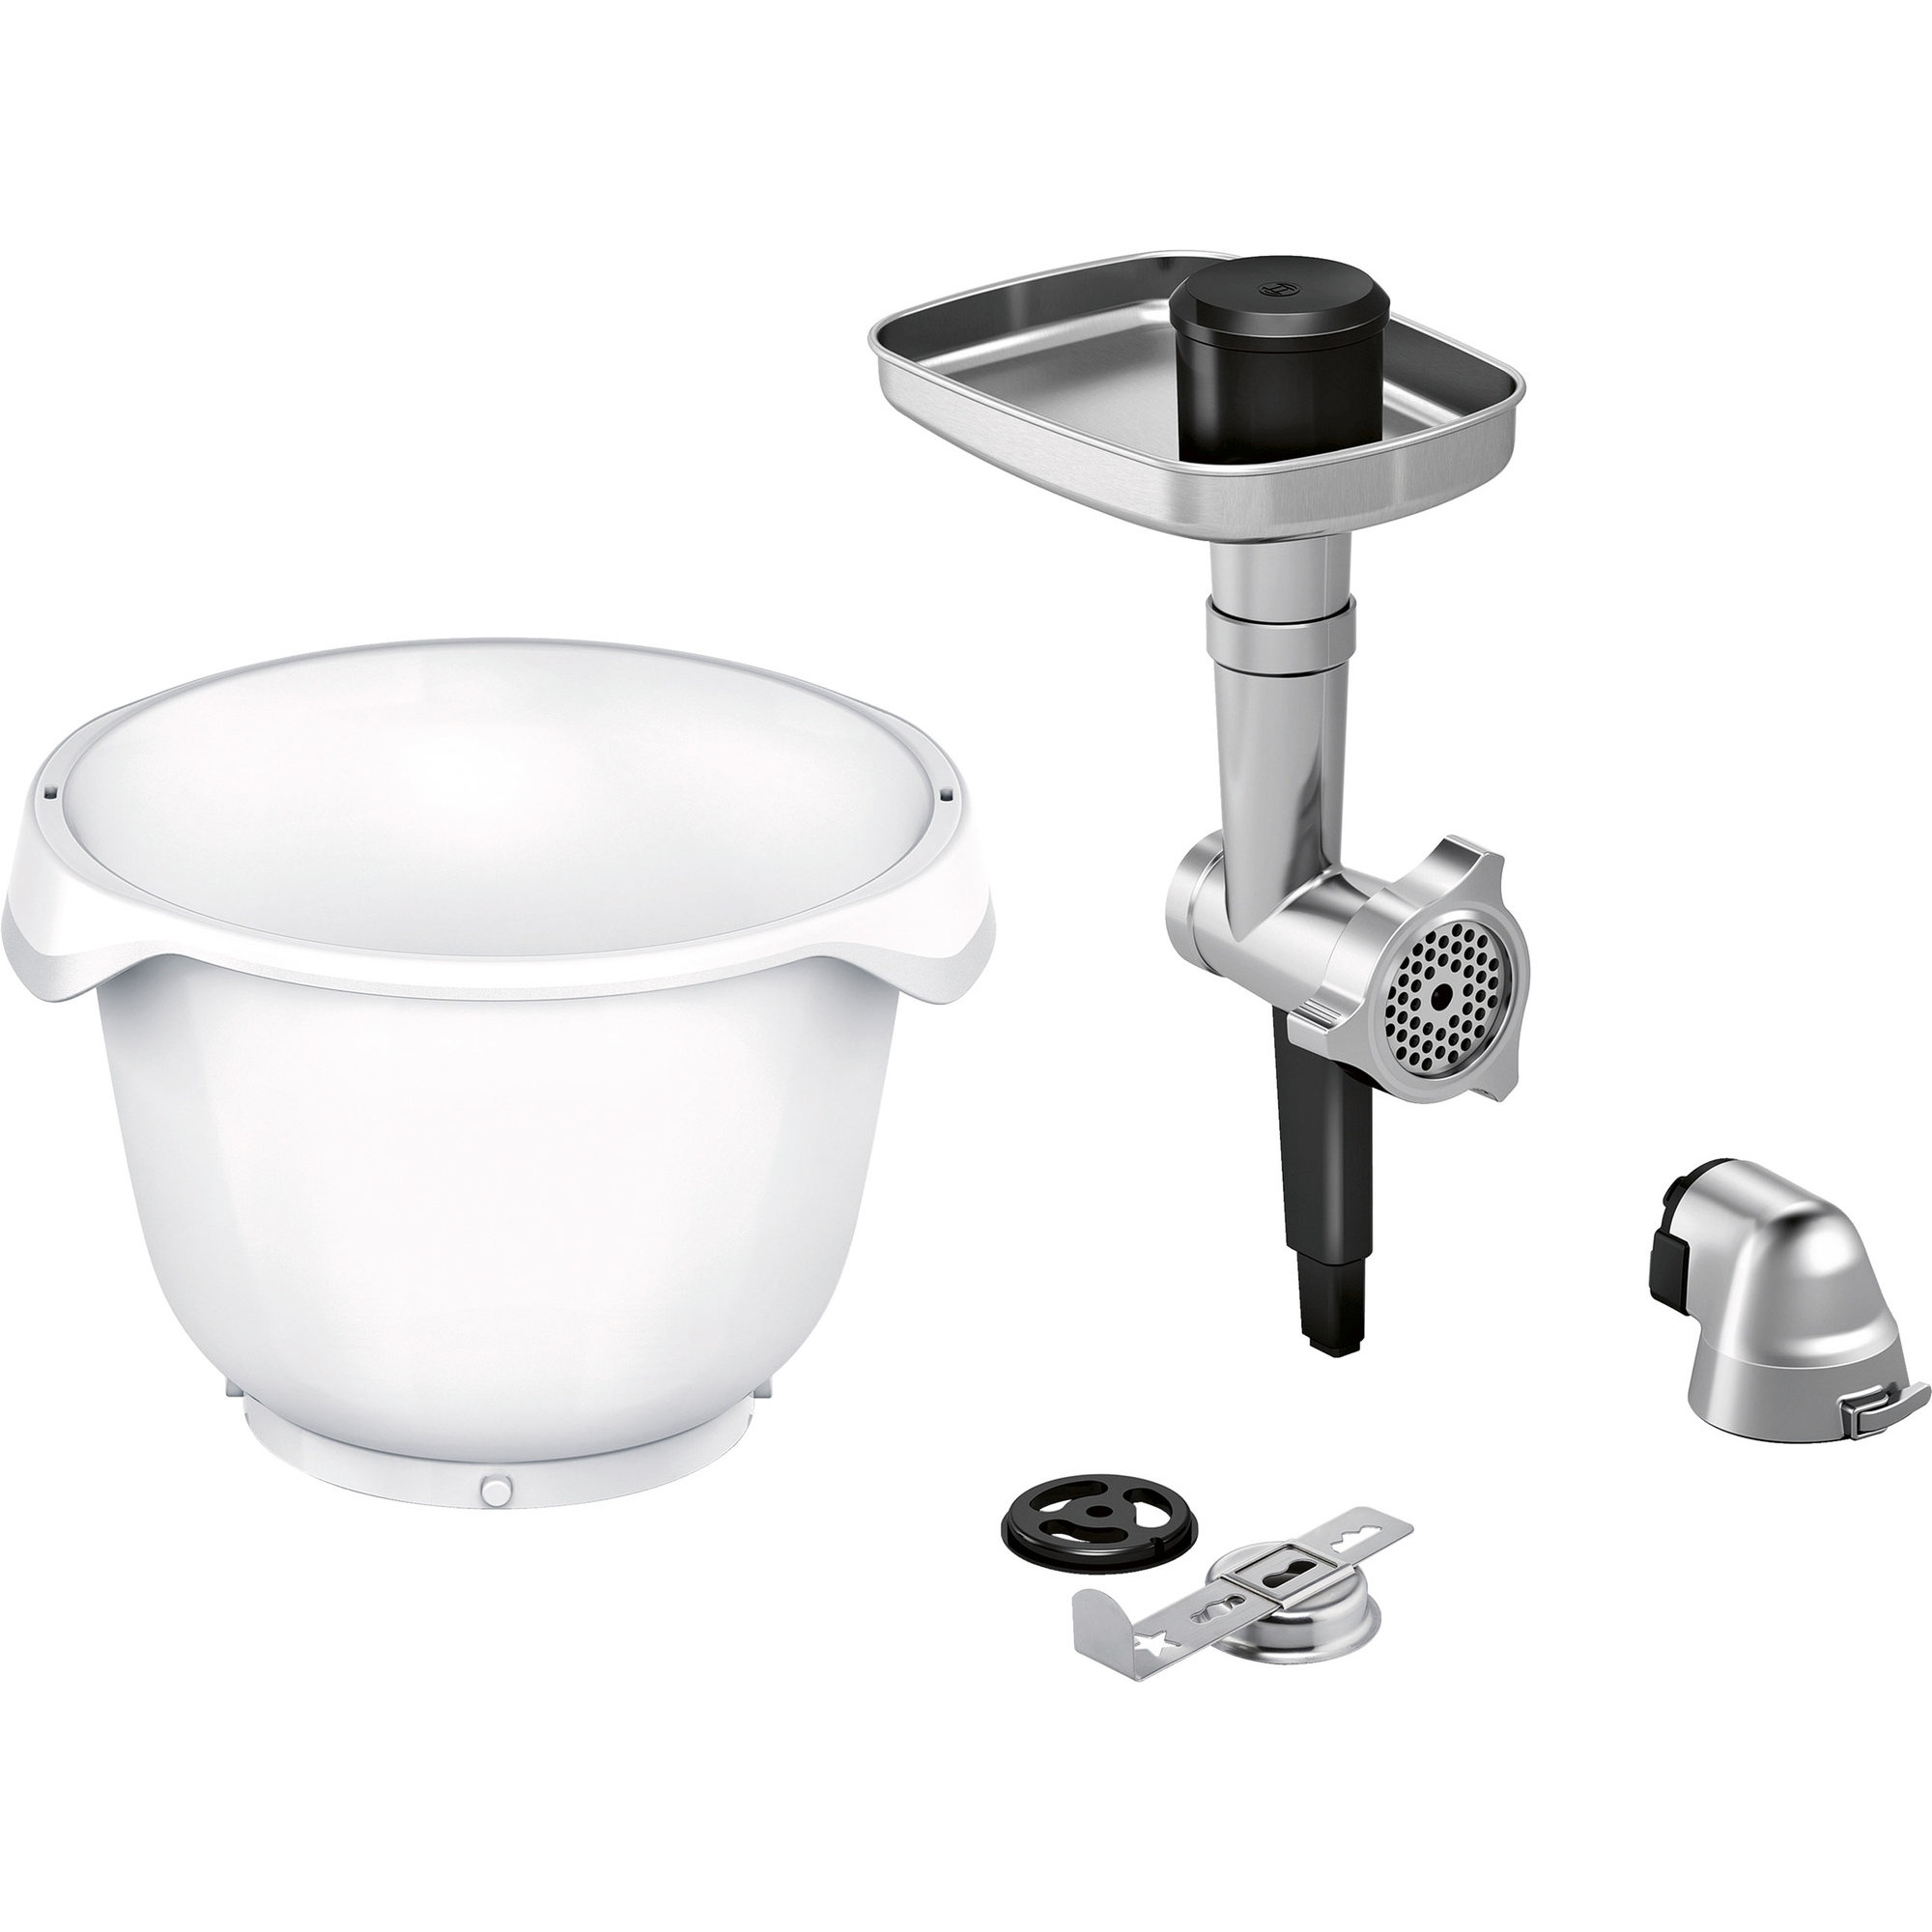 Bosch BakingSensation-set